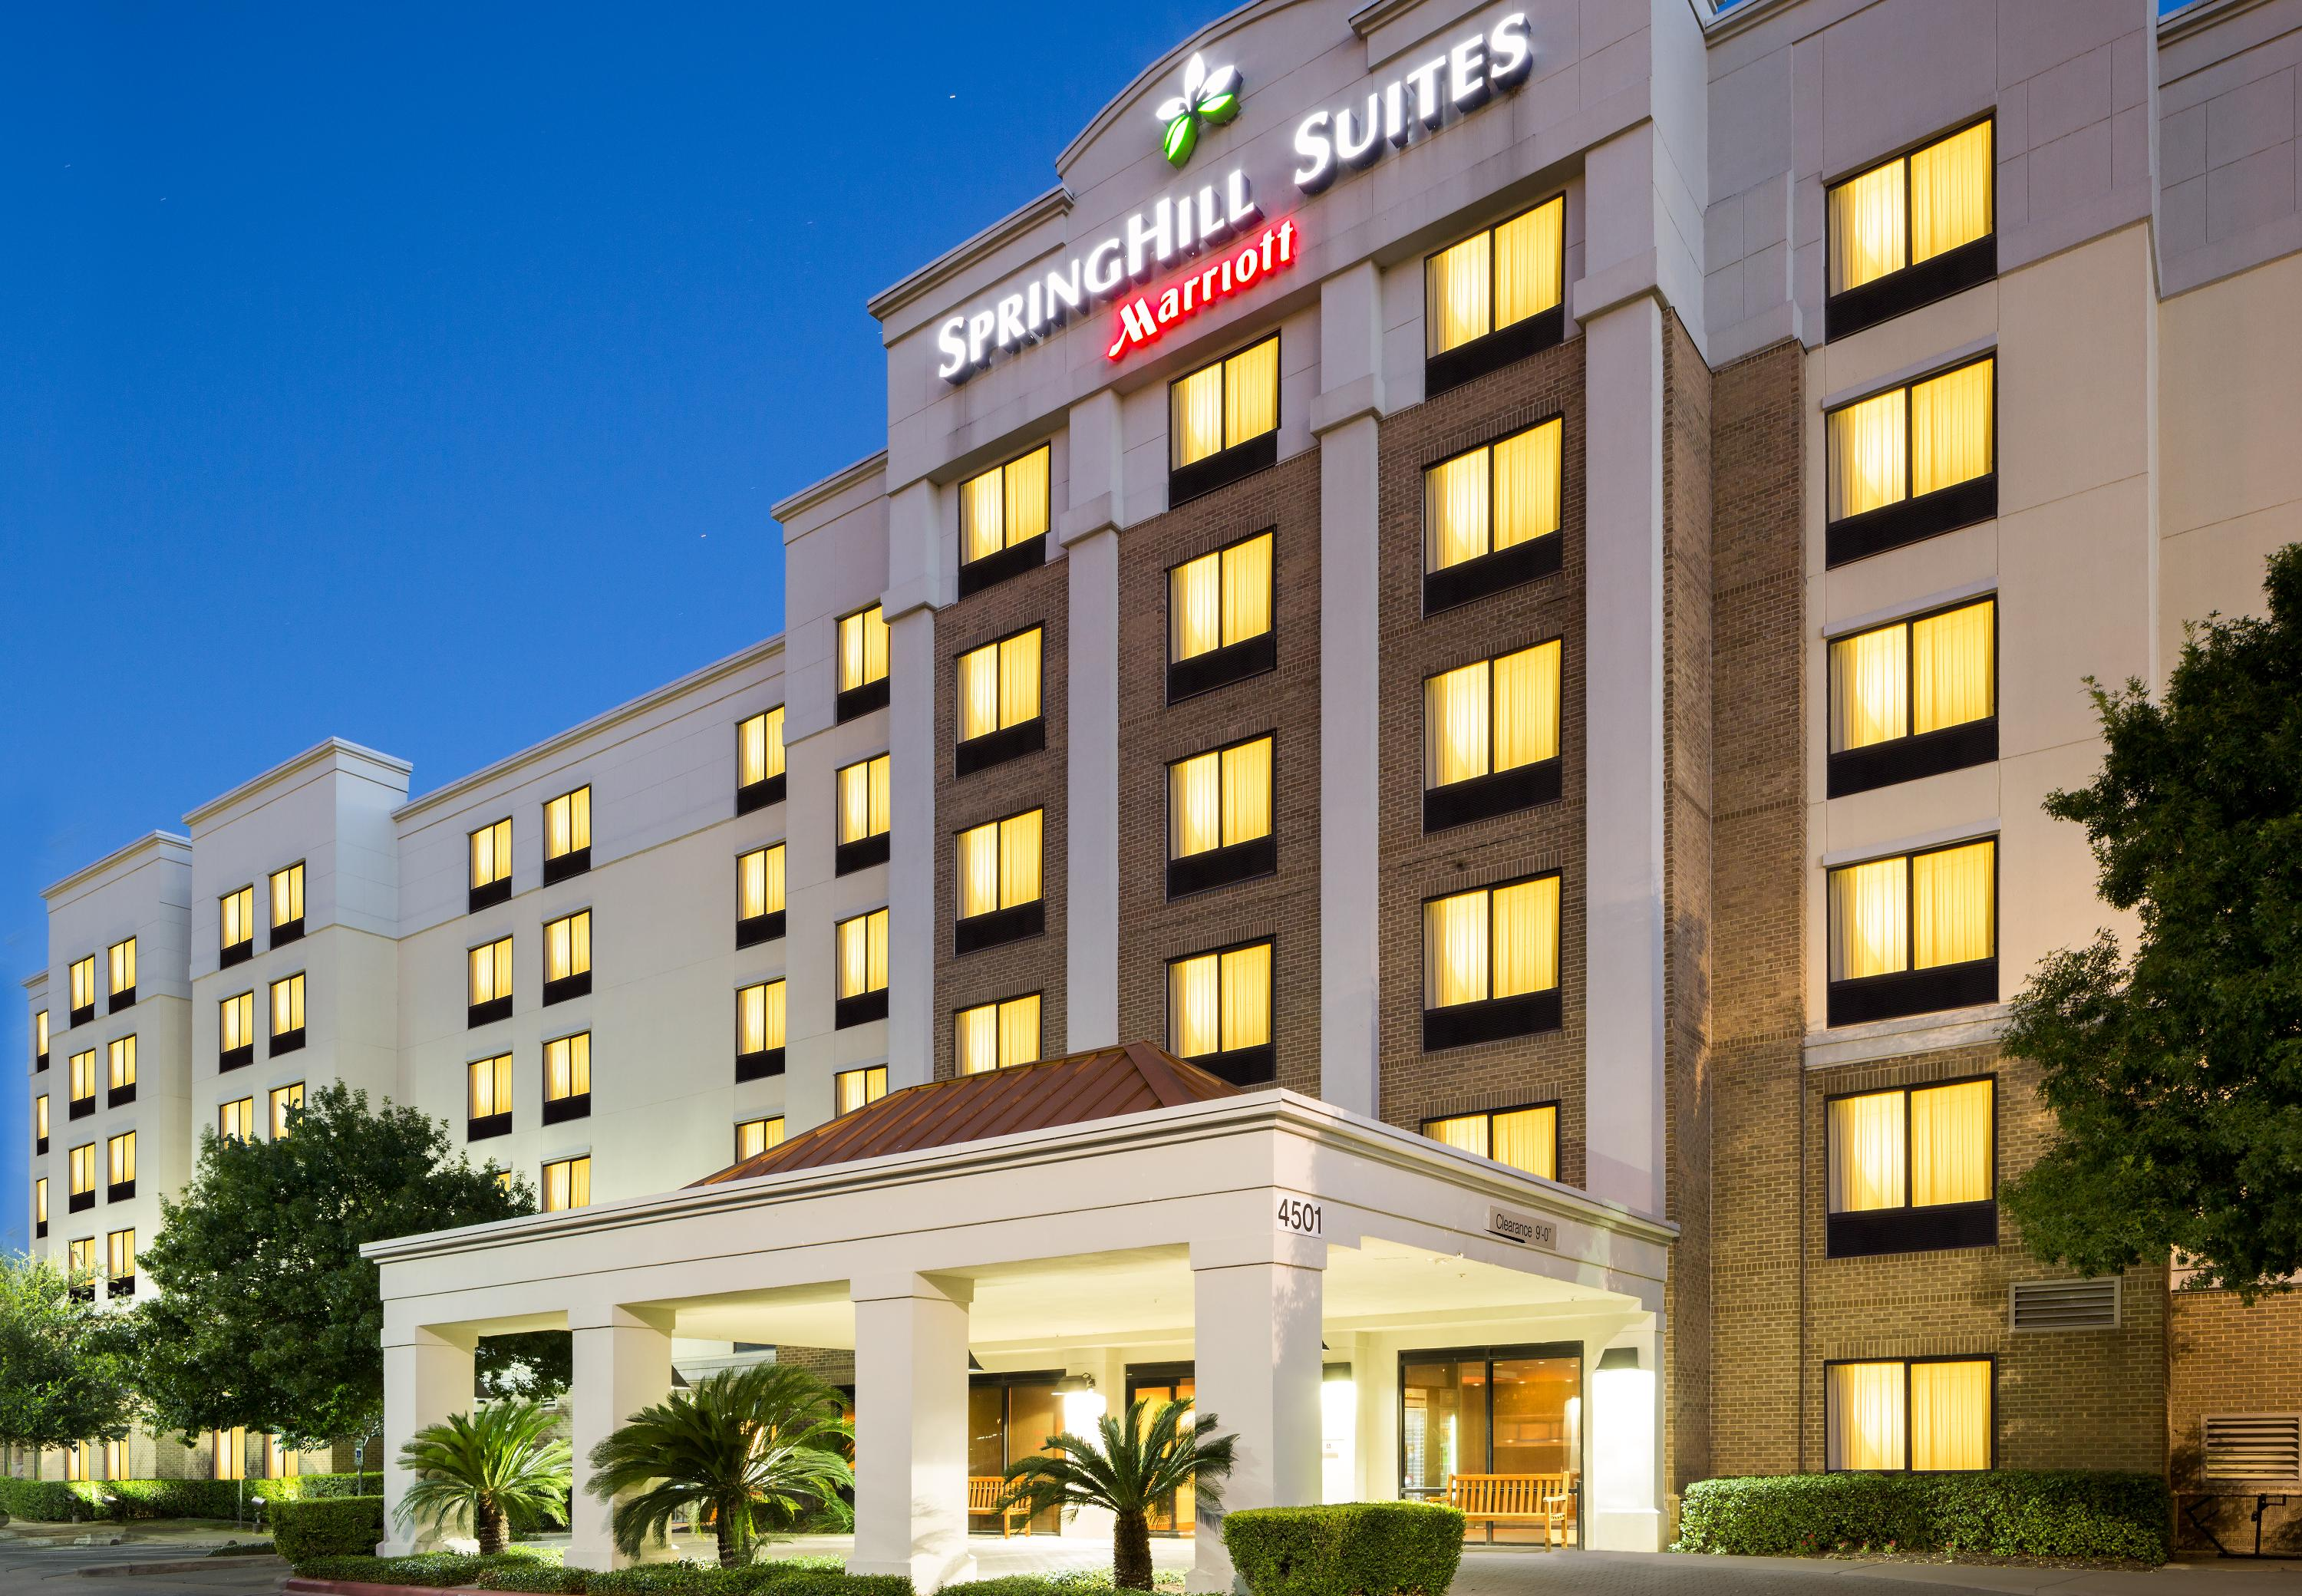 SpringHill Suites by Marriott Austin South image 20